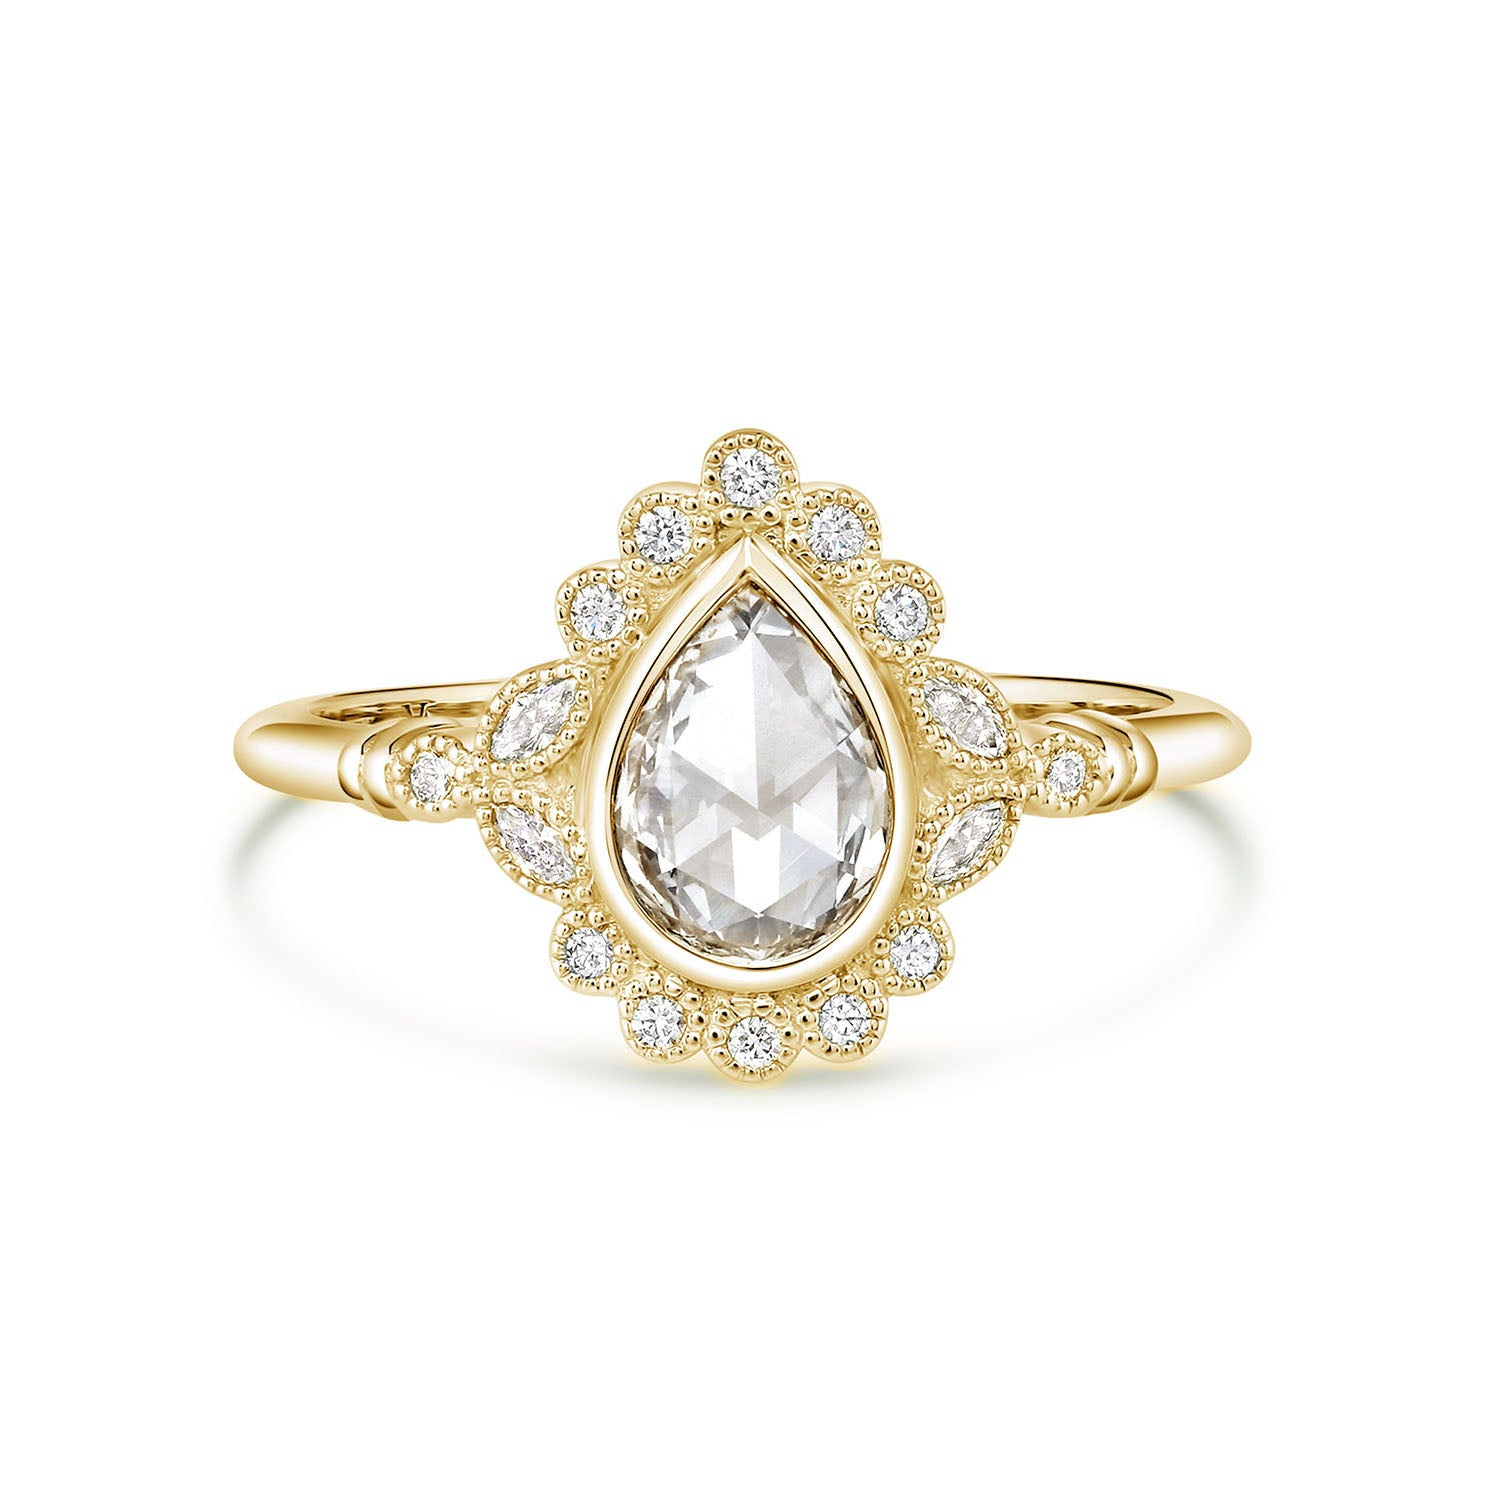 Everly | Pear Rose Cut Moissanite Milgrain Bezel Engagement Ring | Yellow Gold